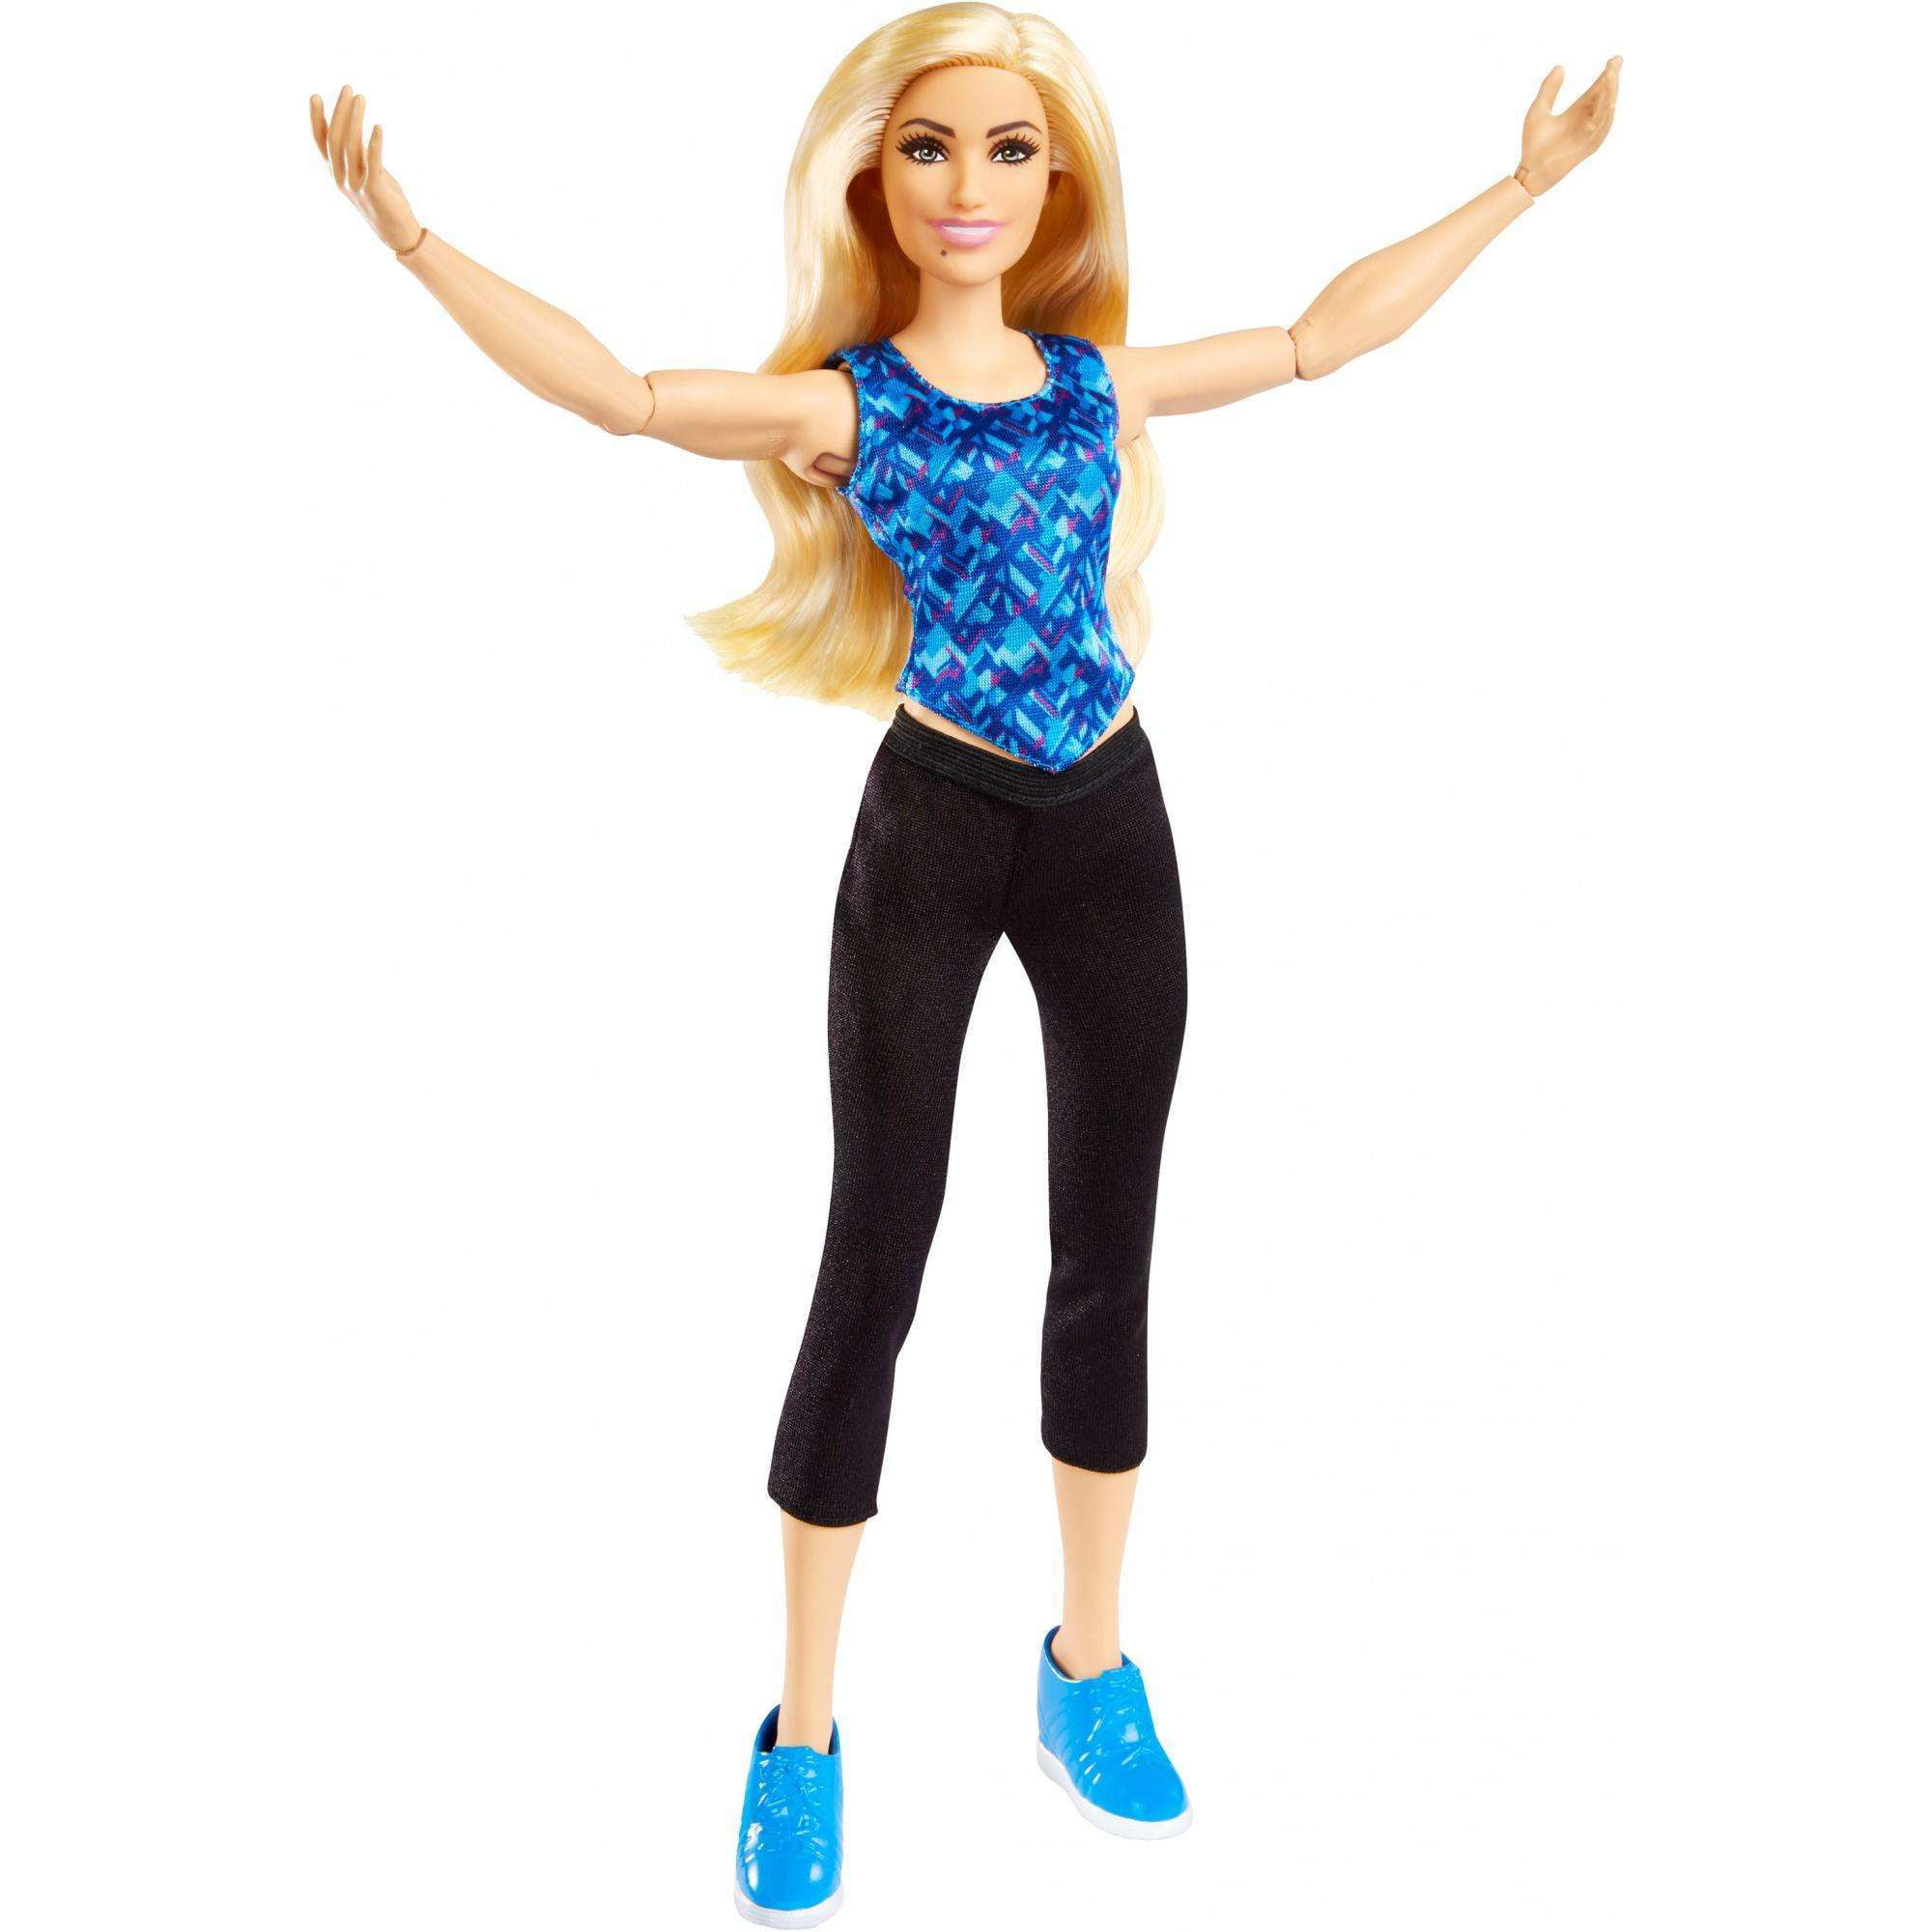 WWE Superstars Charlotte Flair Doll by Supplier Generic